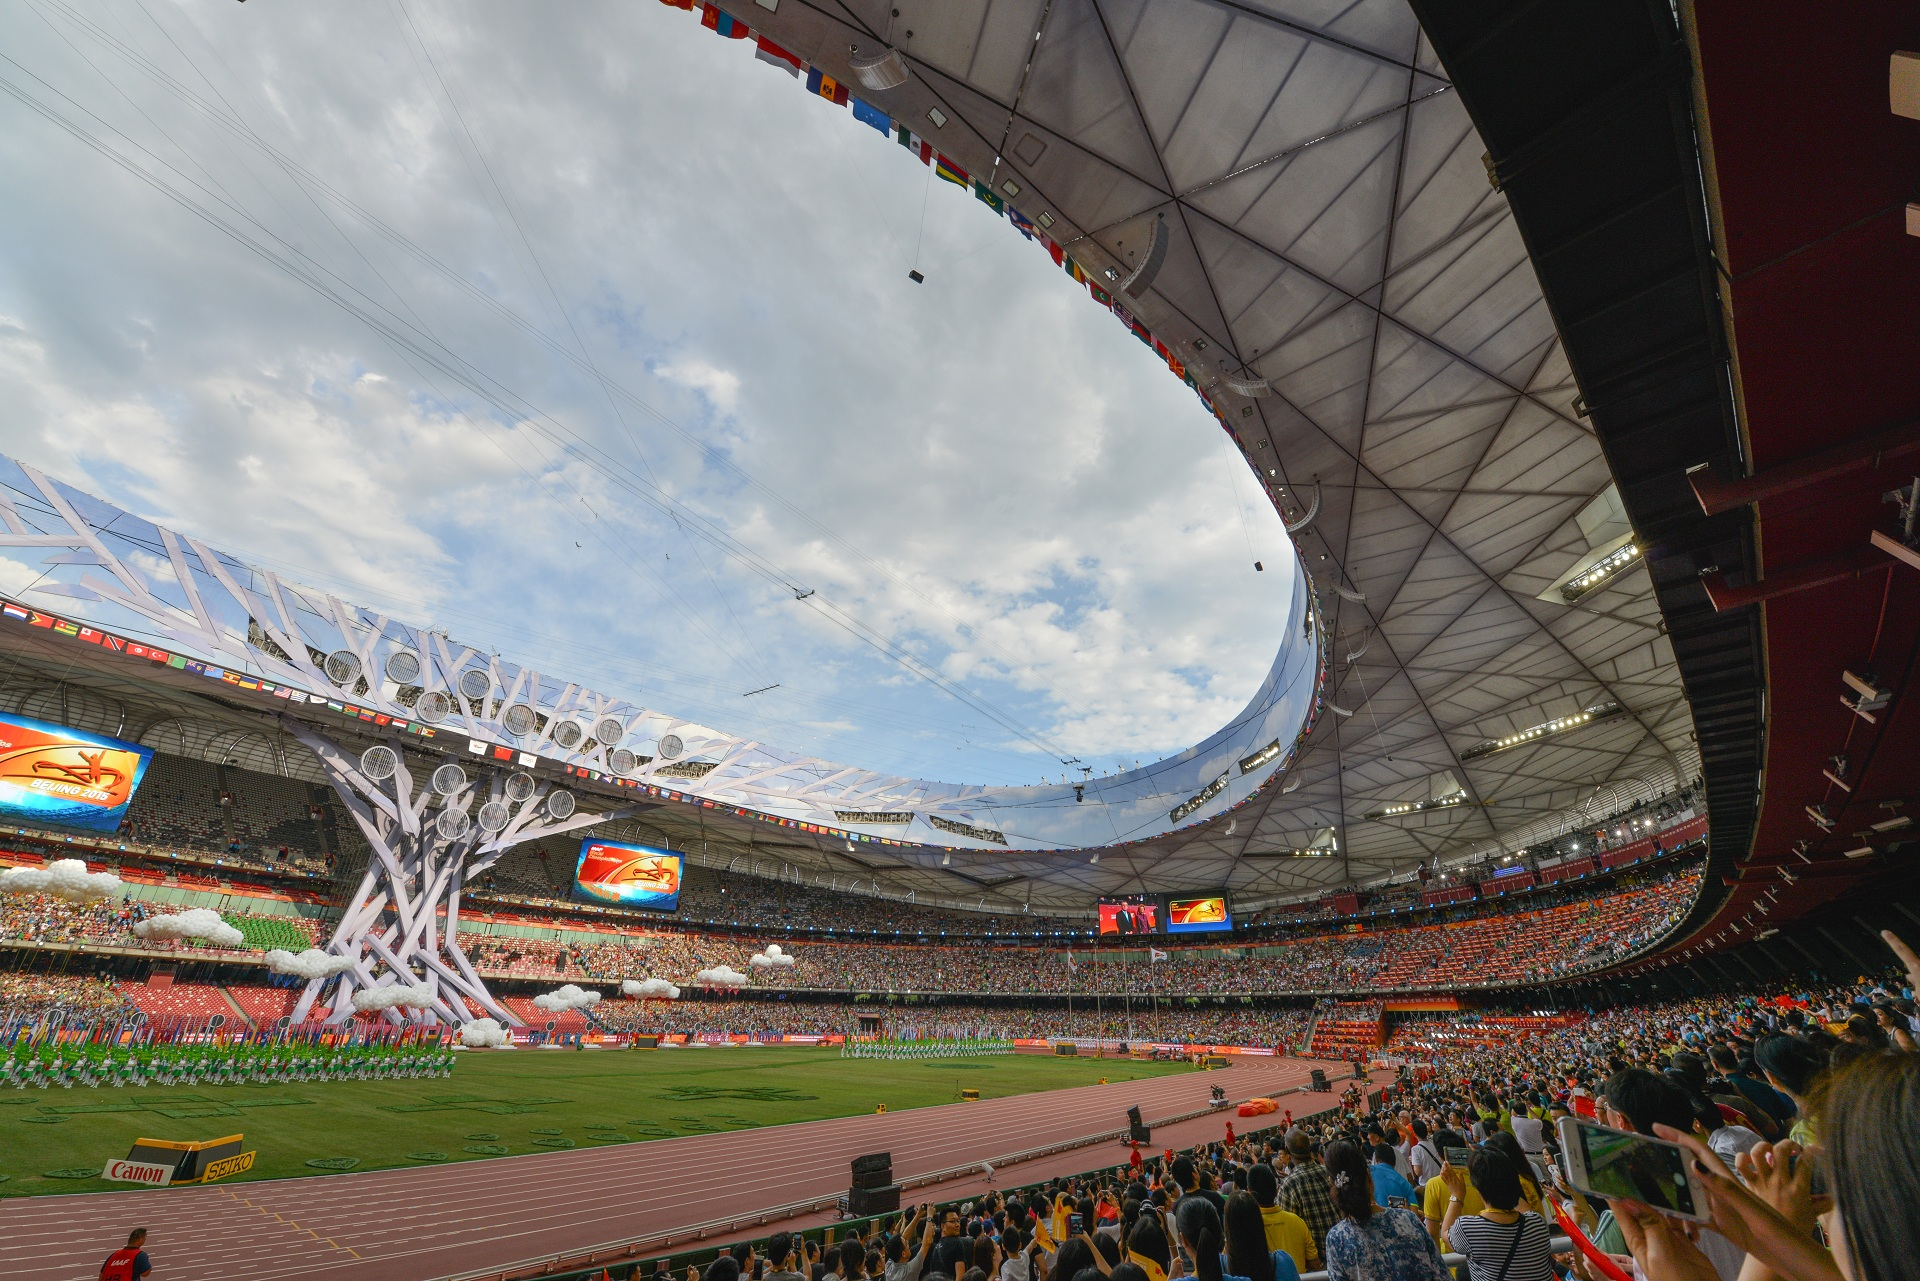 Enlace Gsm Libre Connect 680000 Fans In Iaaf World Championships Beijing 2015